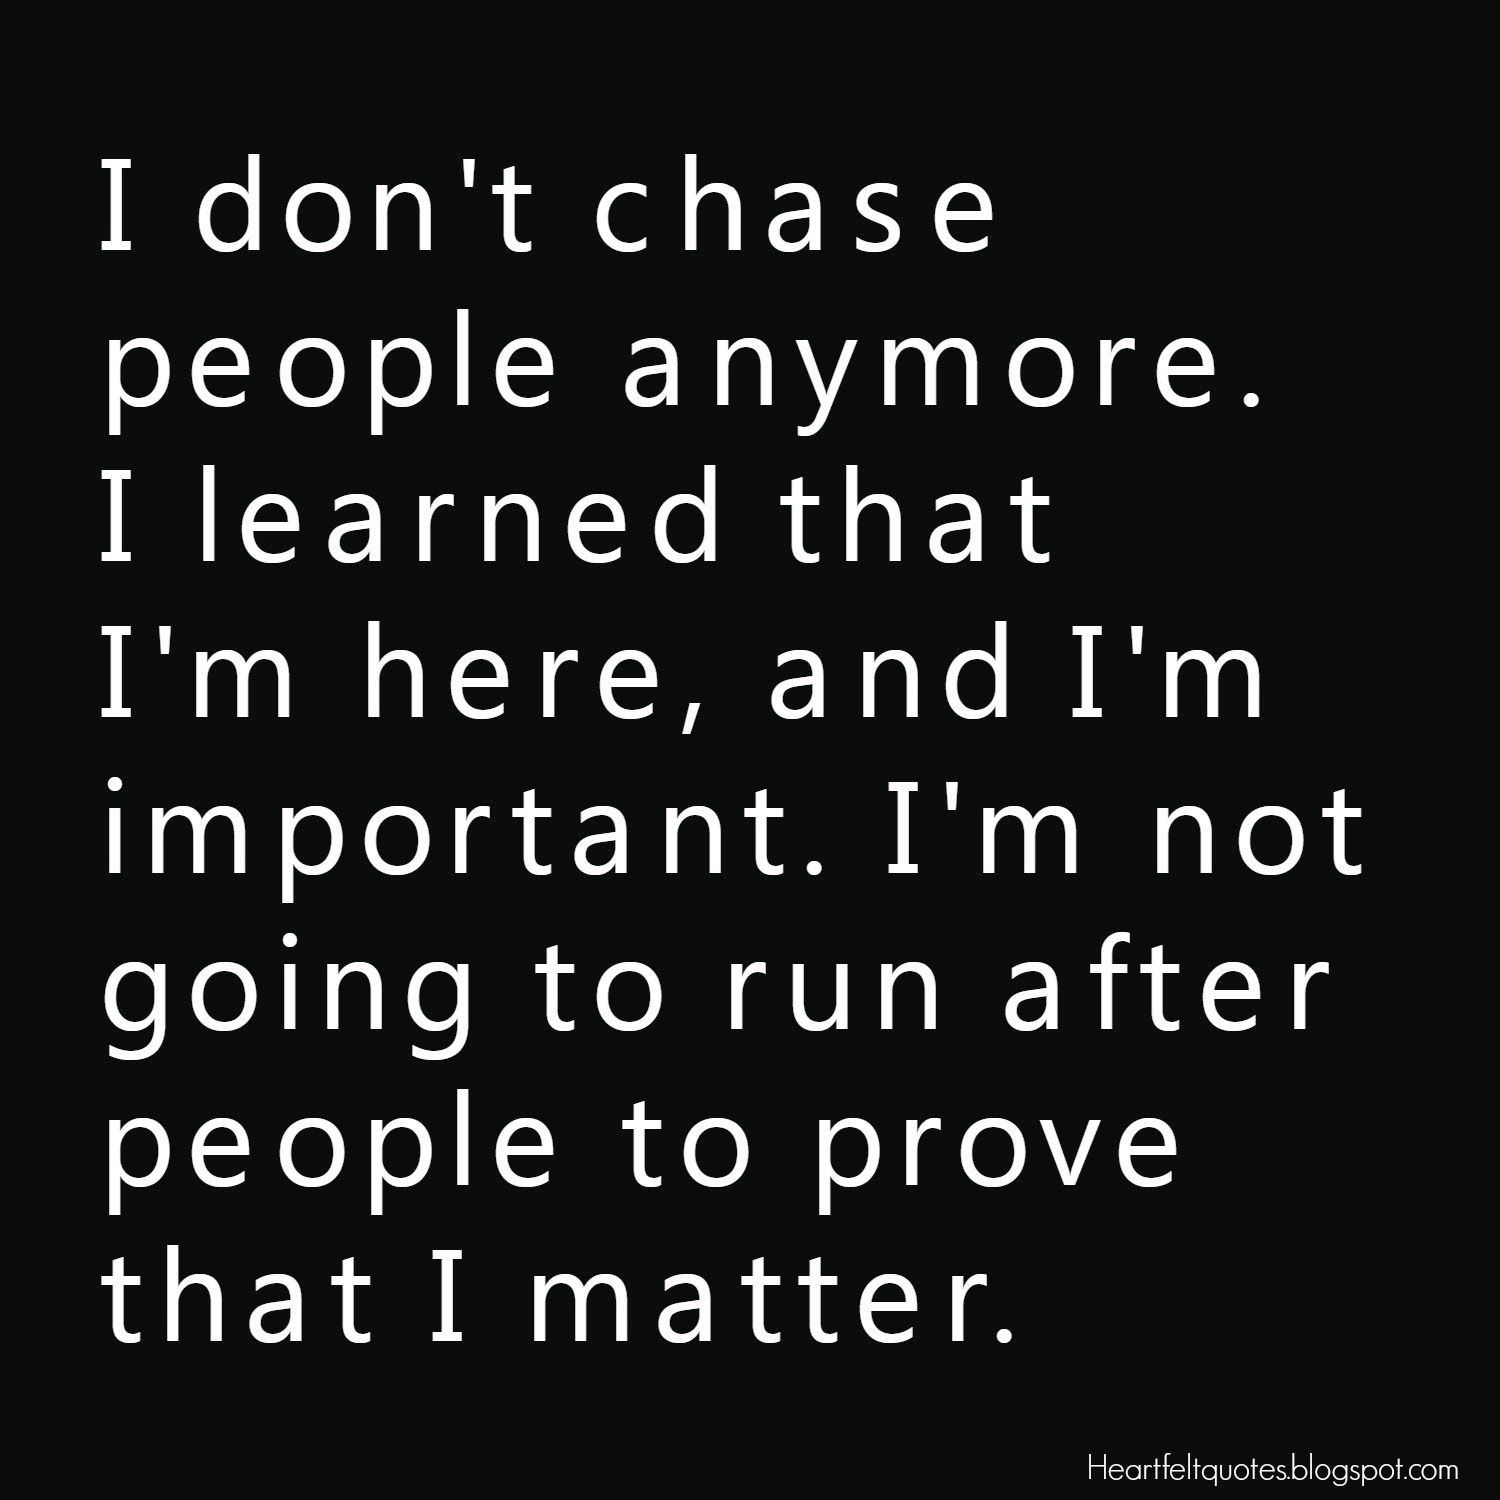 I don t chase people anymore I learned that I m here and I m important I m not going to run after people to prove that I matter